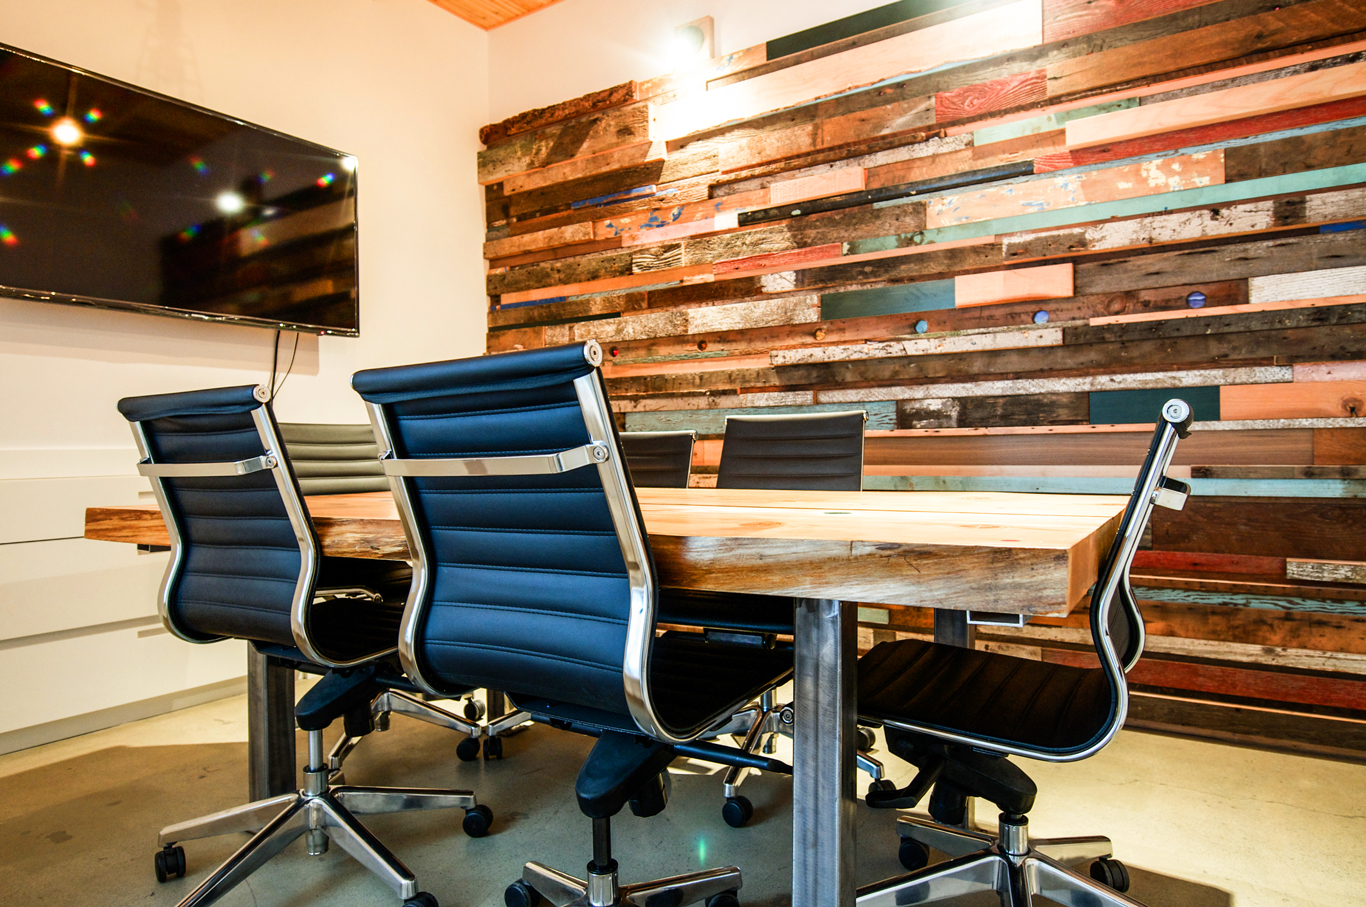 Boardroom - An upbeat, fun space. How a boardroomshould look!